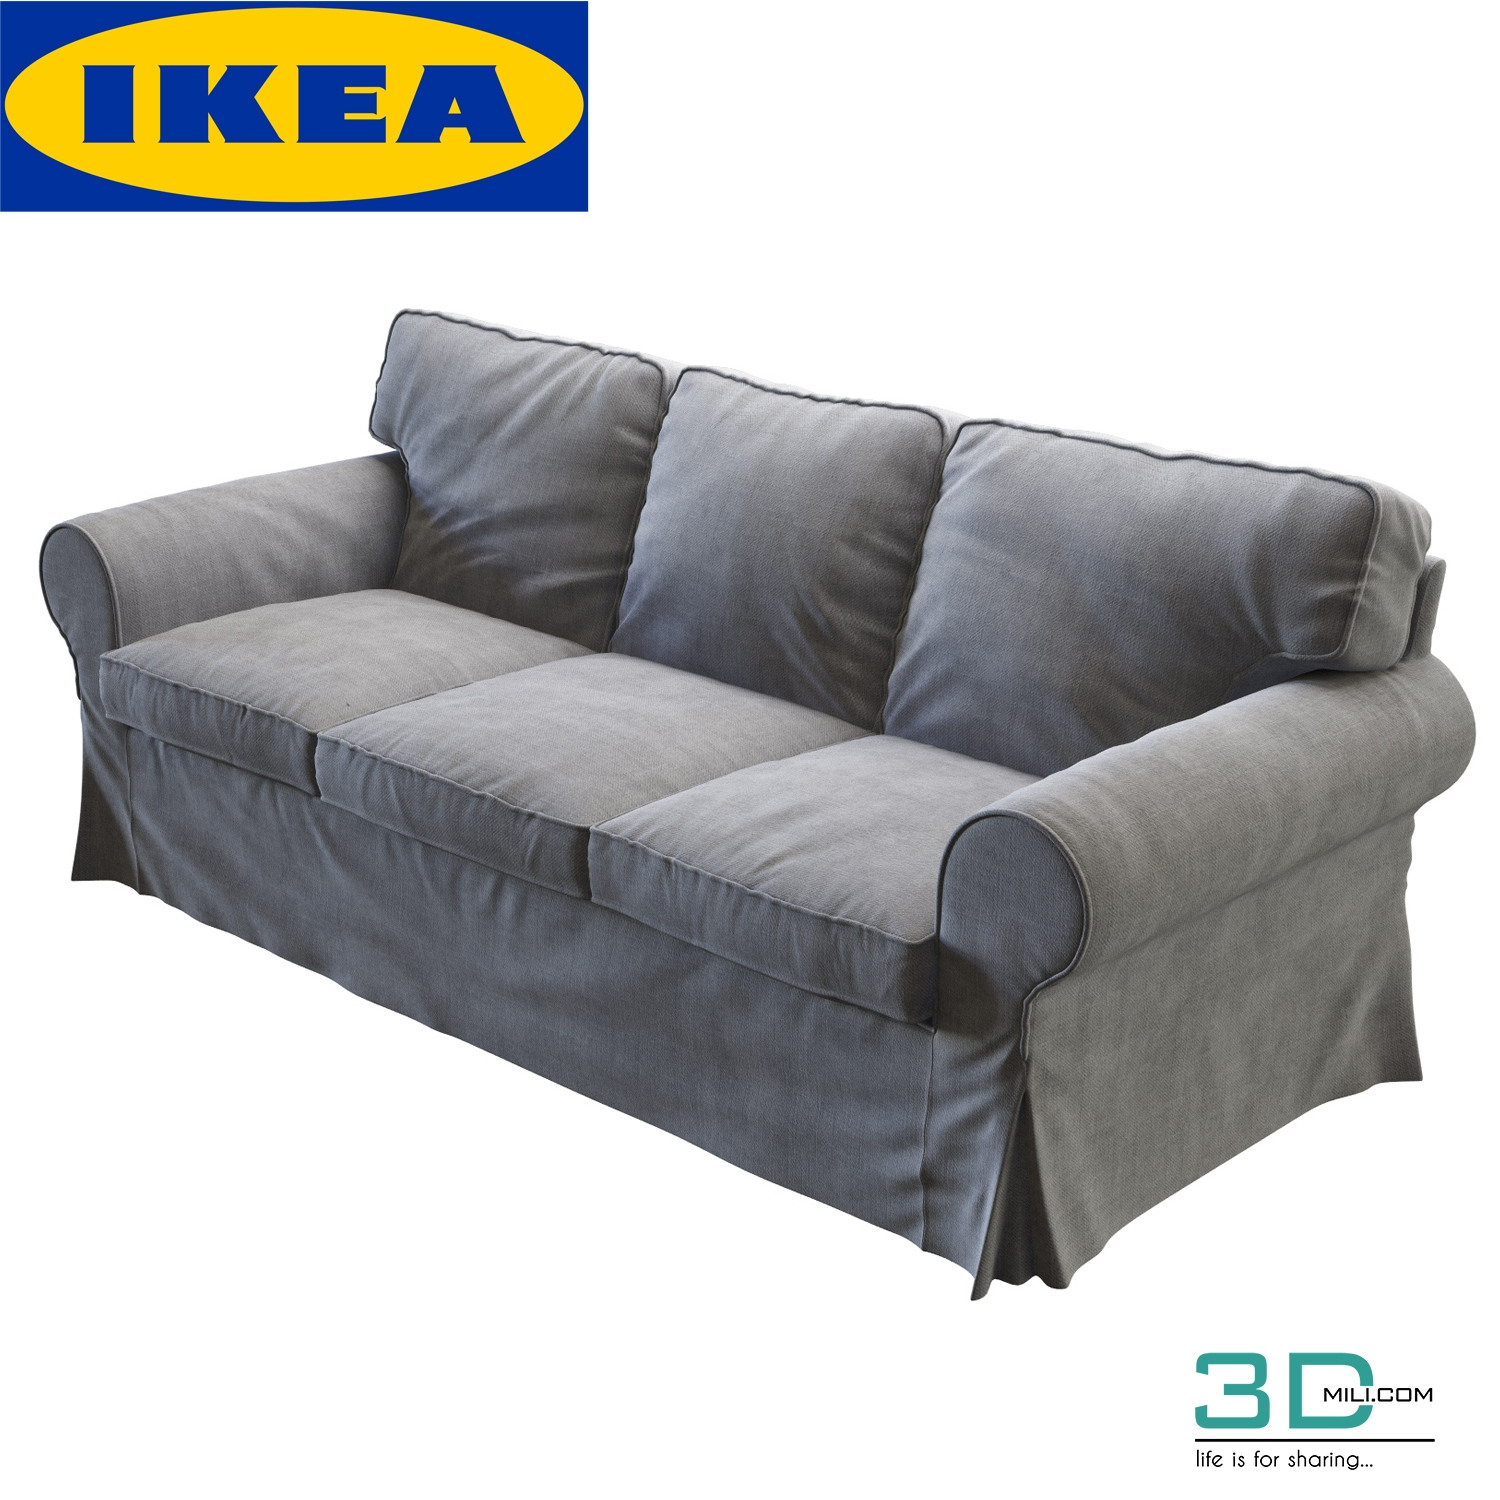 226 Ikea Ektorp Three Seat Sofa 3d Mili Download 3d